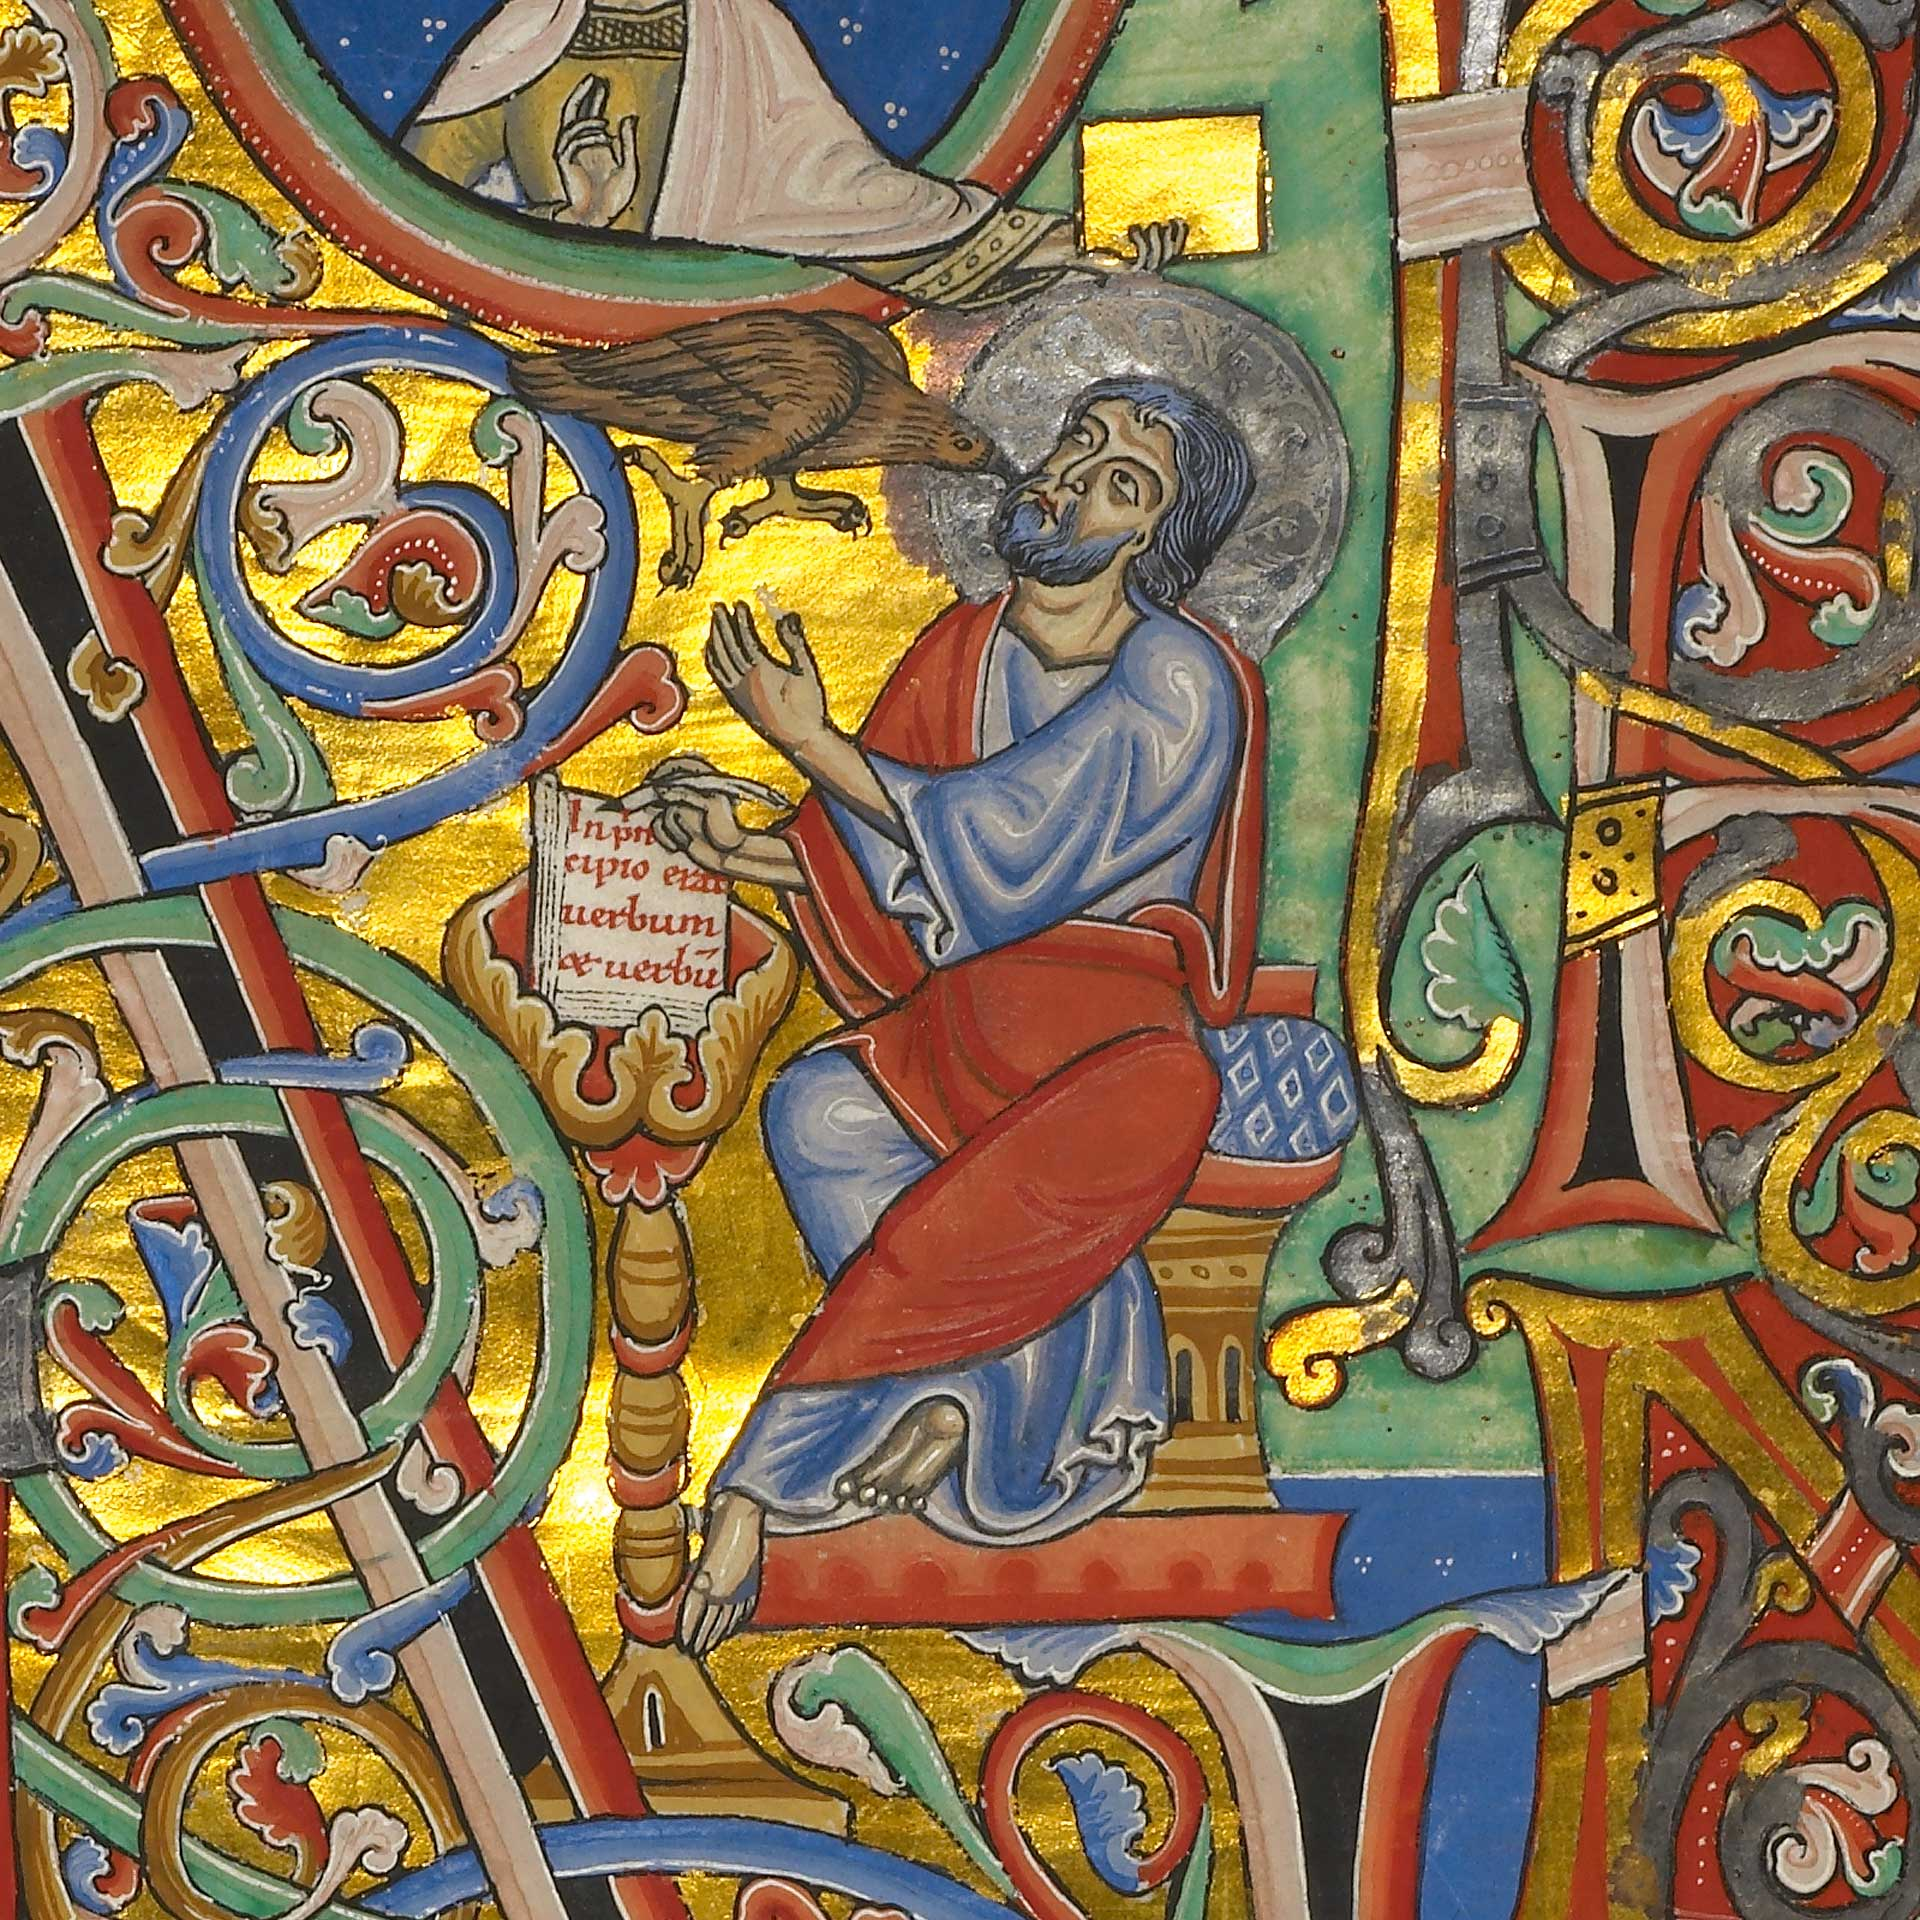 Illuminated manuscripts